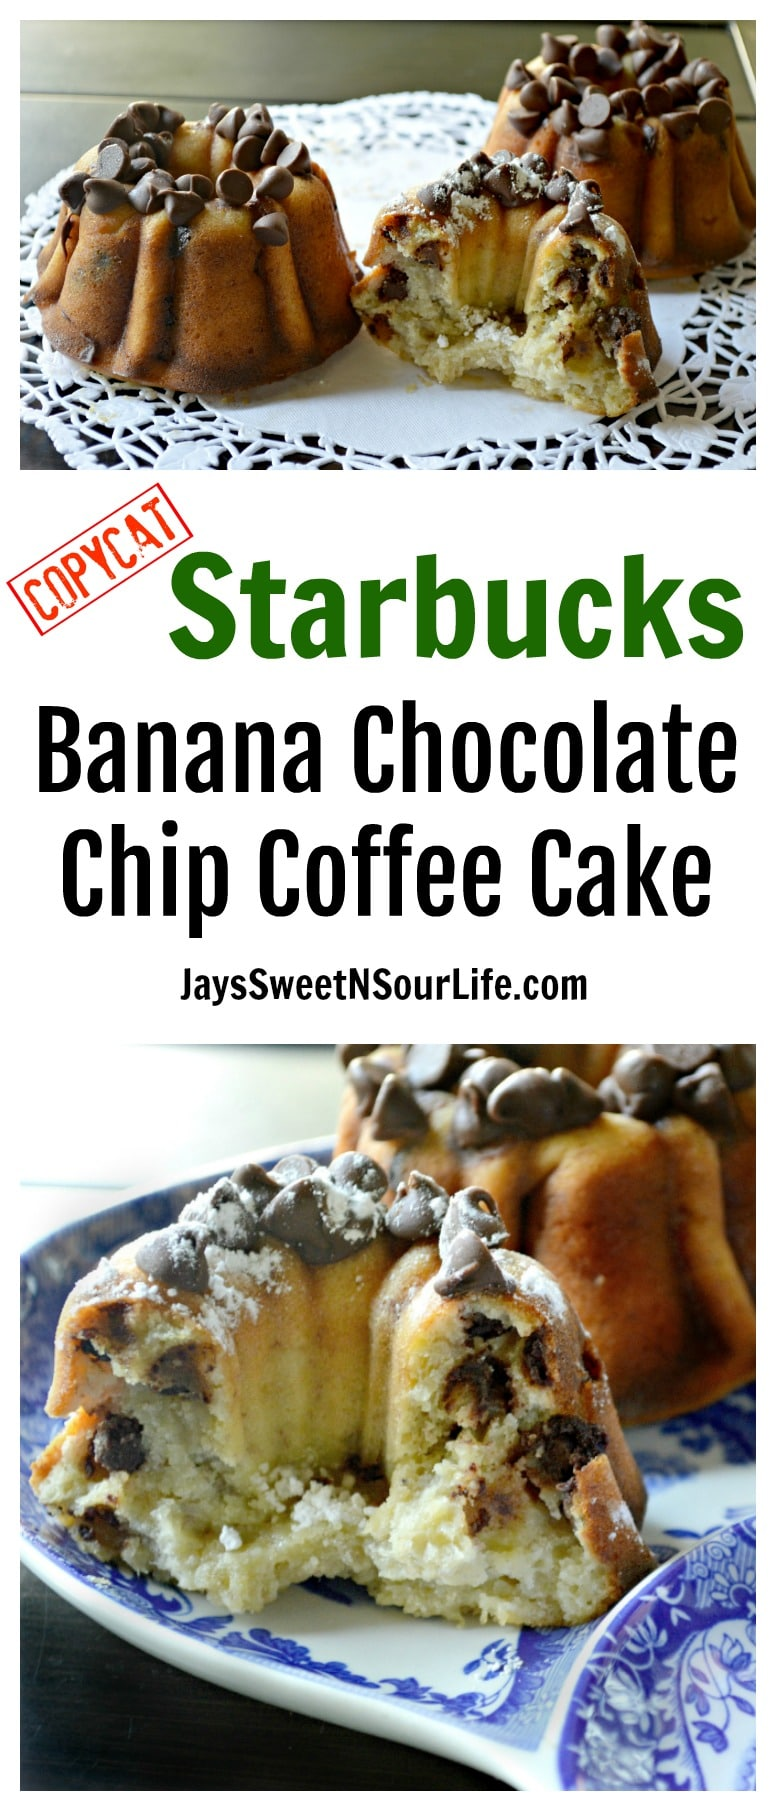 Try this easy to make Copycat Starbucks Banana Chocolate Chip Coffee Cake Fill your home with the smell of this delicious coffeehouse treat.